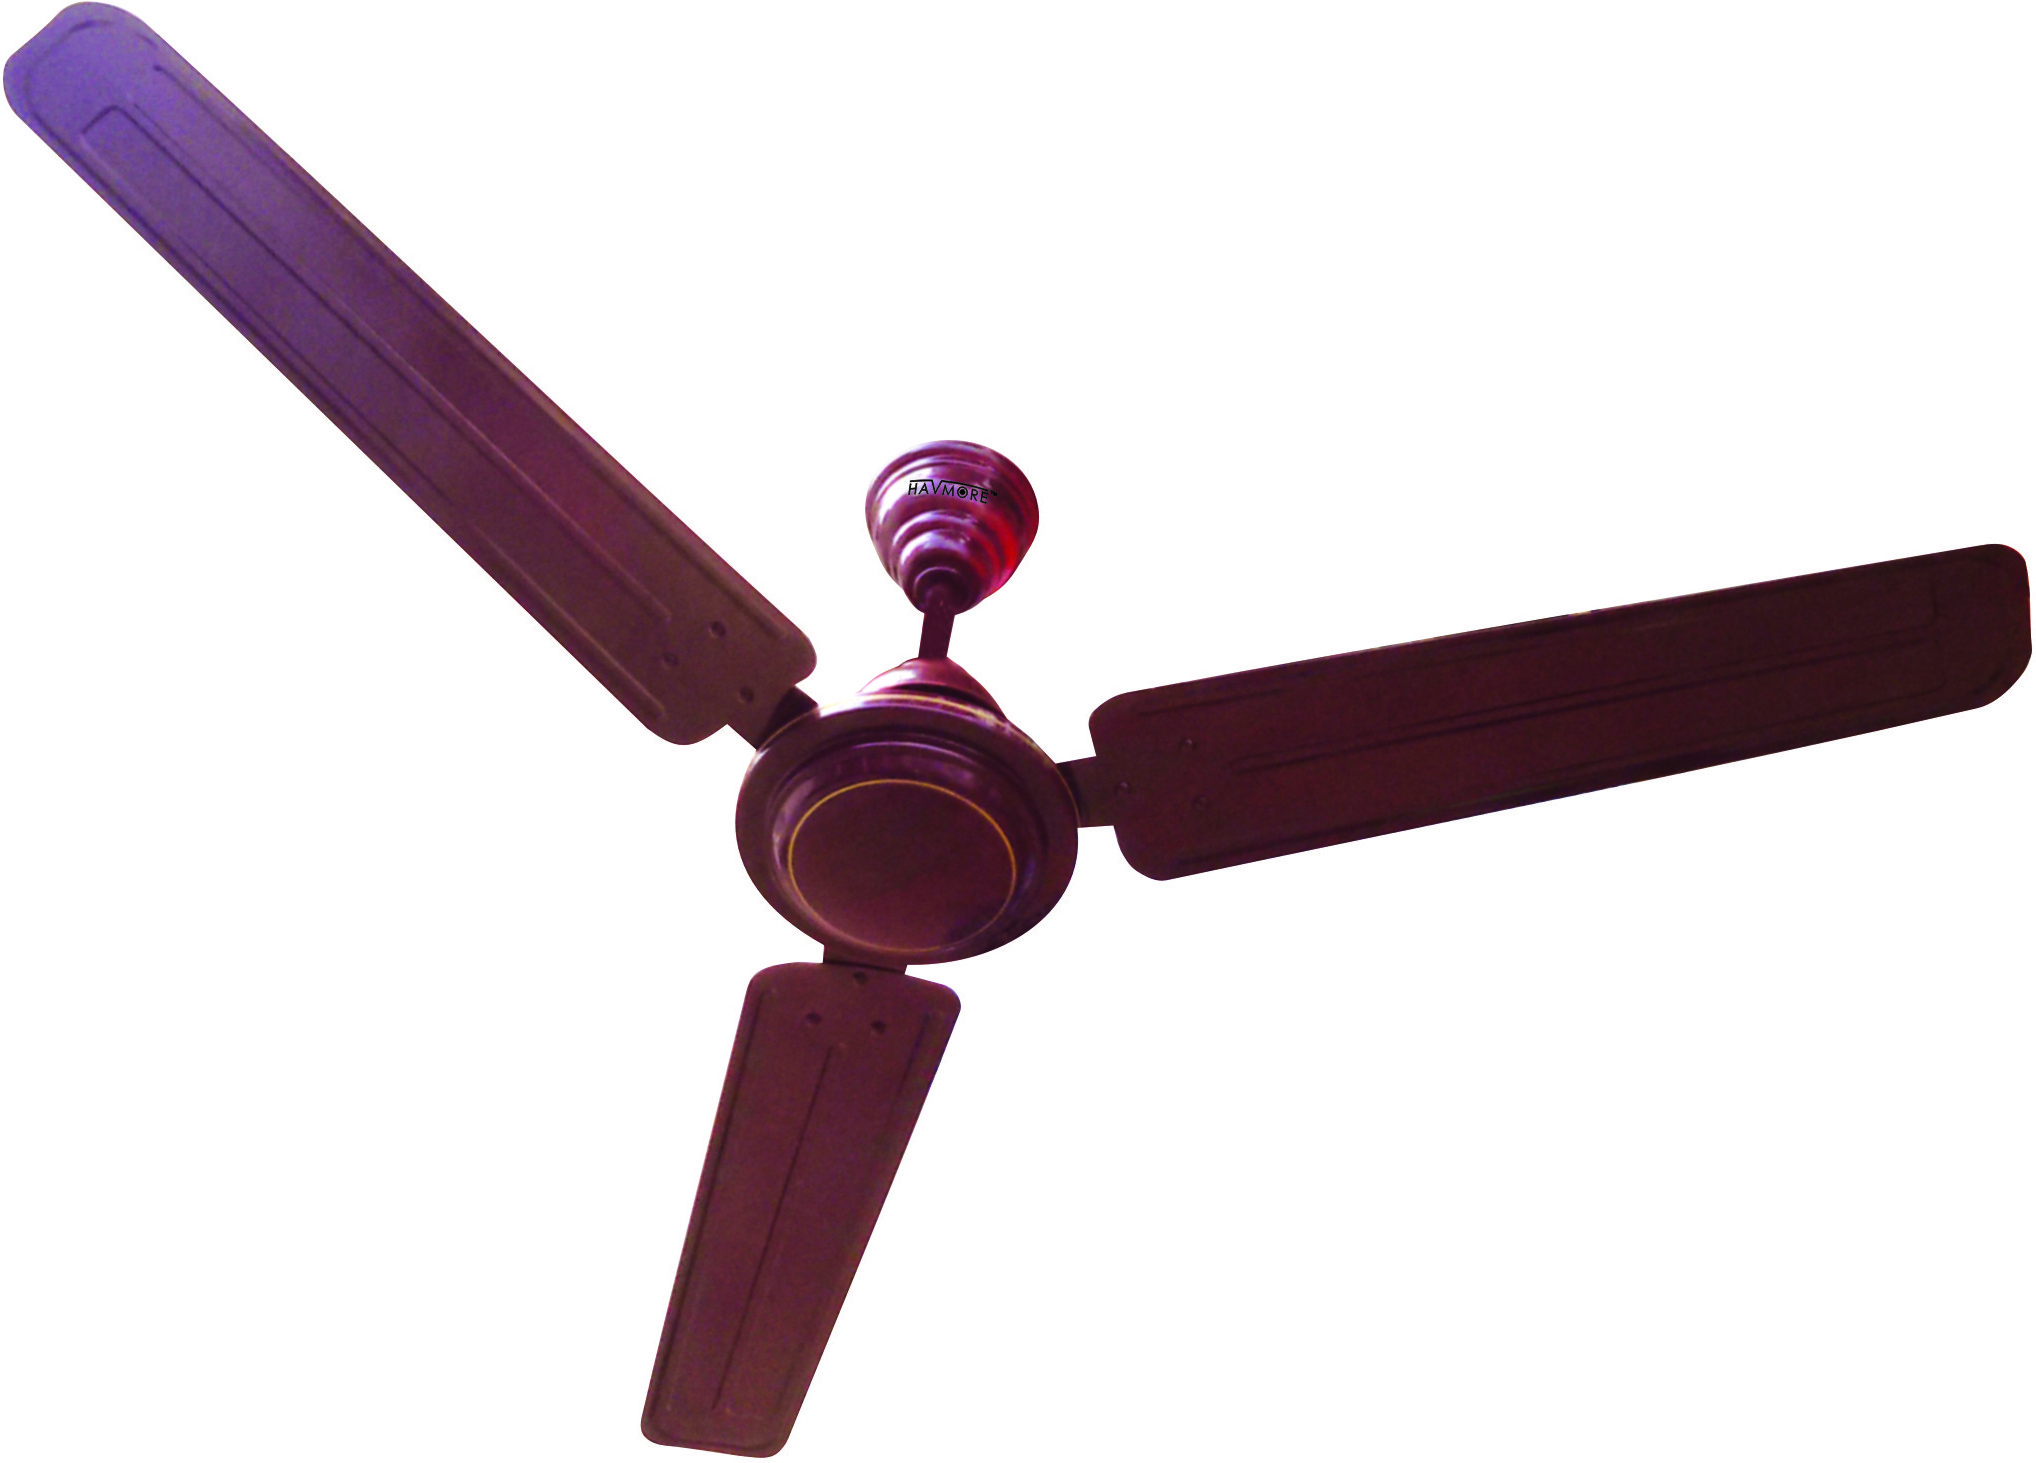 helicopter blade ceiling fan photo - 1